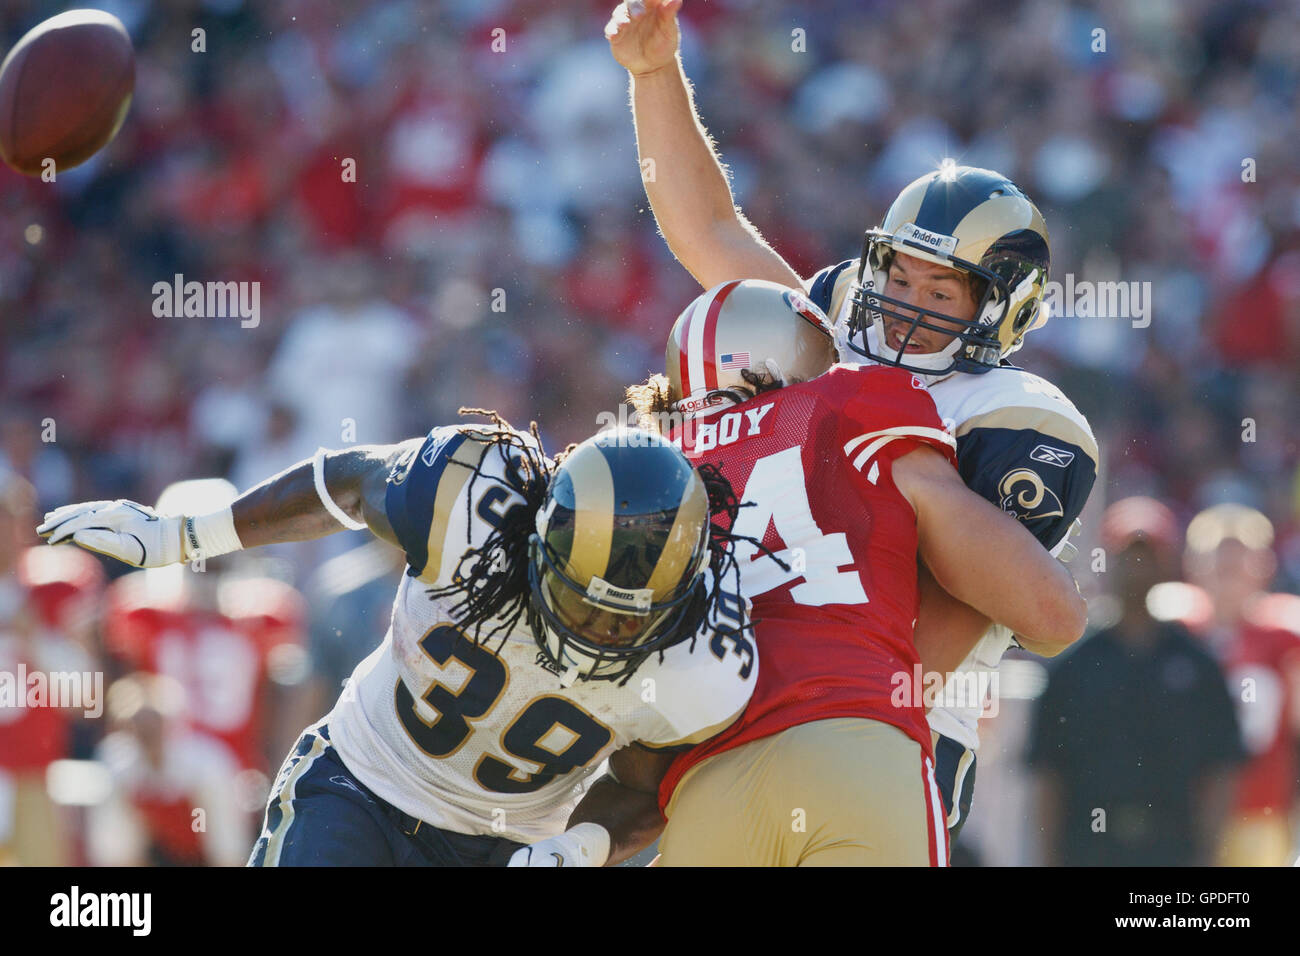 November 14, 2010; San Francisco, CA, USA;  St. Louis Rams quarterback Sam Bradford (8) is hit by San Francisco - Stock Image